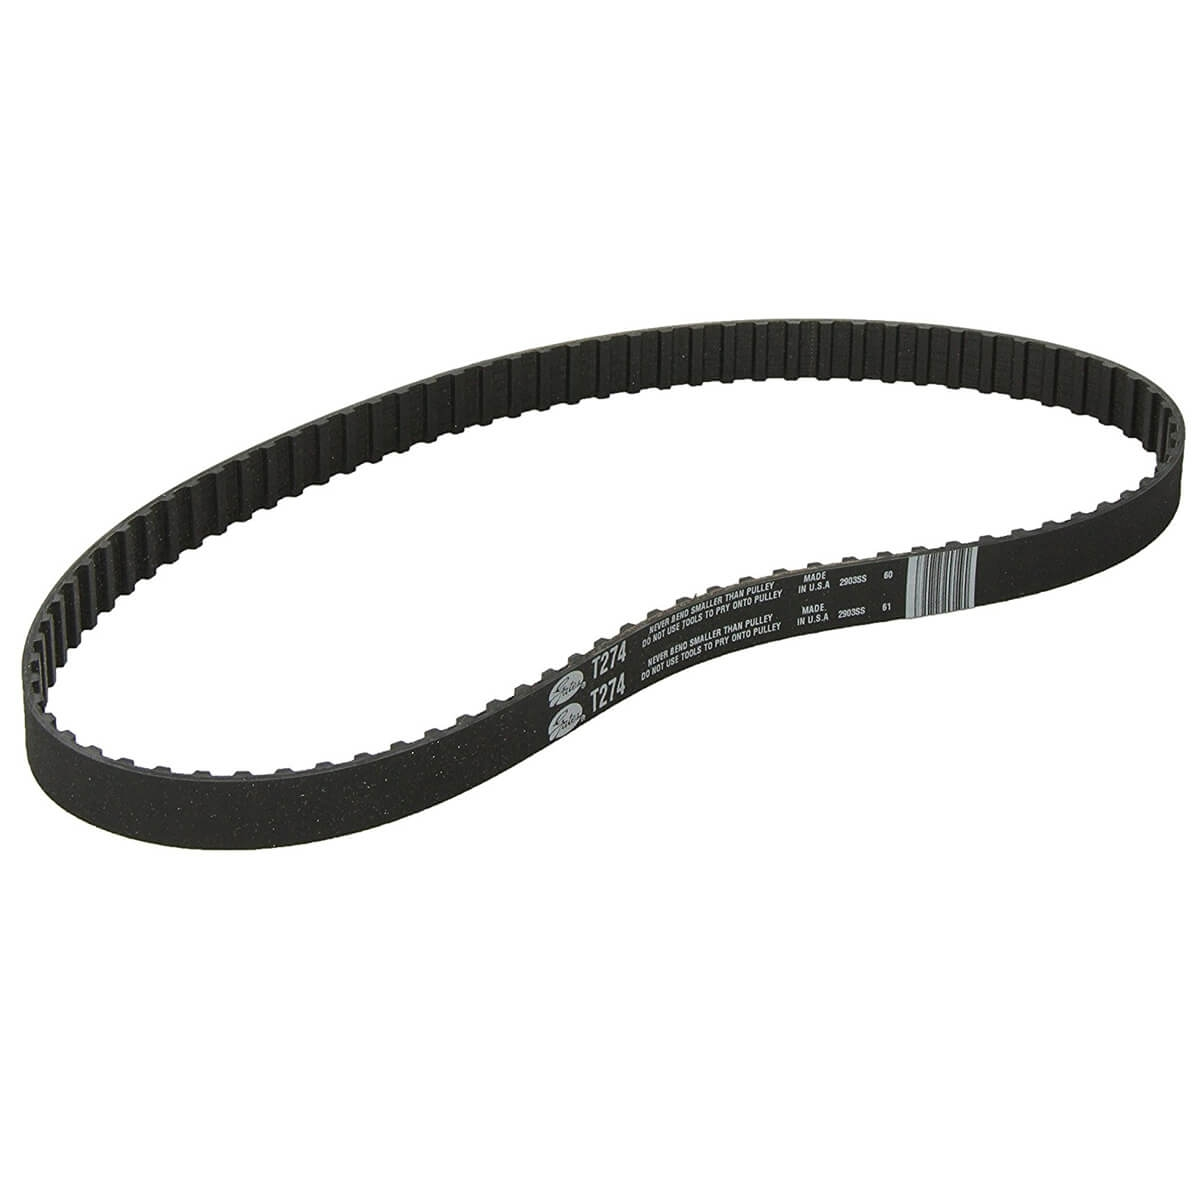 CADILLAC CTS Timing Belt